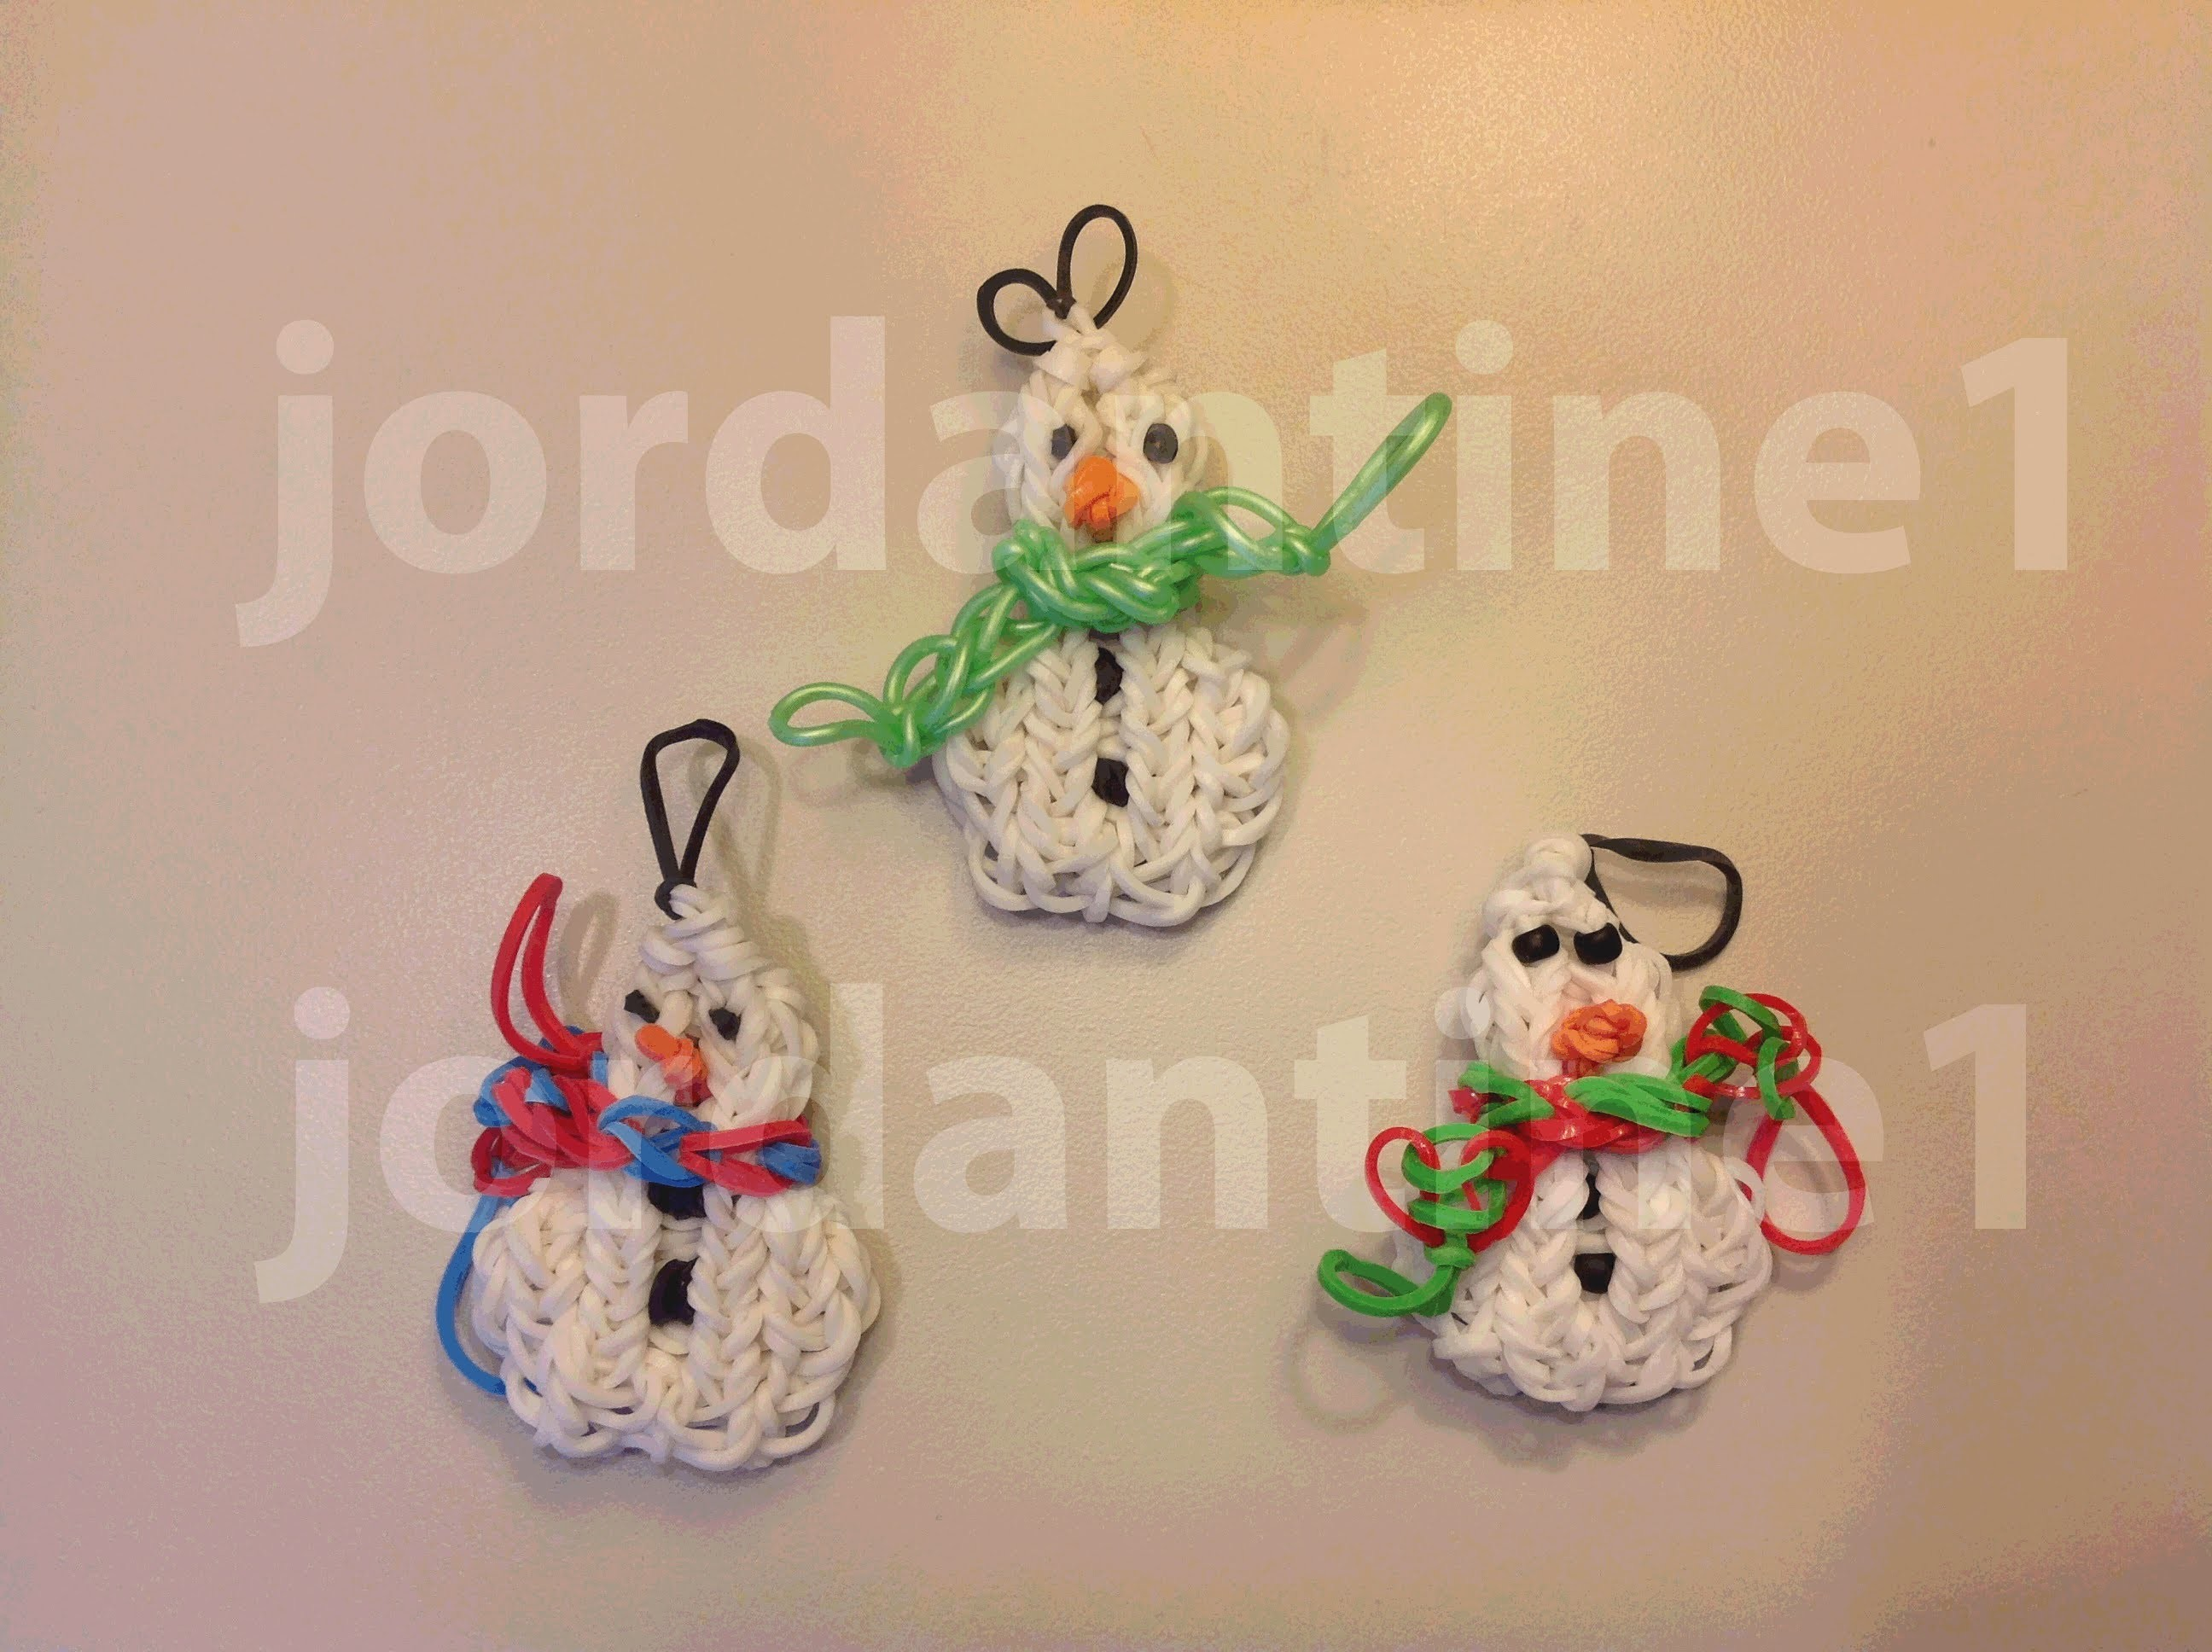 How To Make A Rainbow Loom Small Snowman Charm or Ornament With Two Snowballs